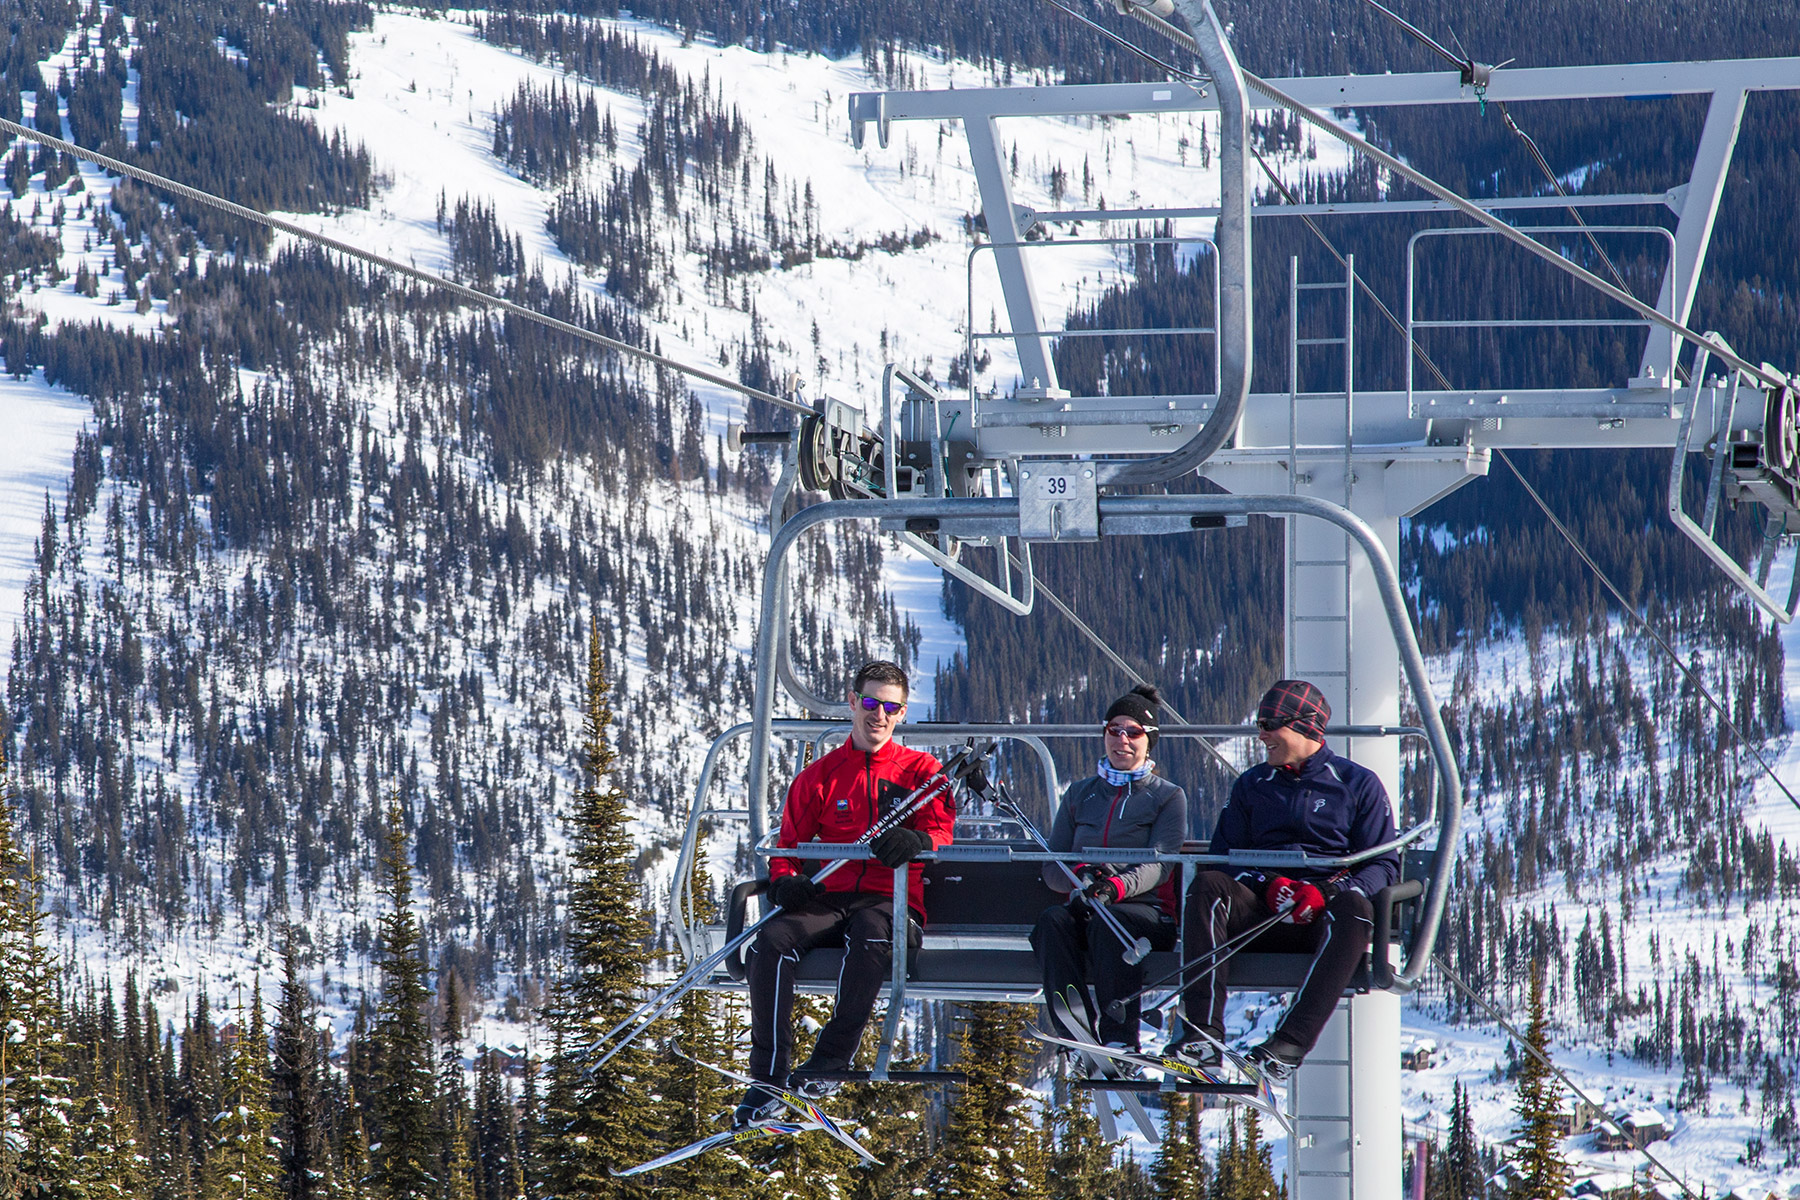 Nordic skiers riding the Morrisey chairlift